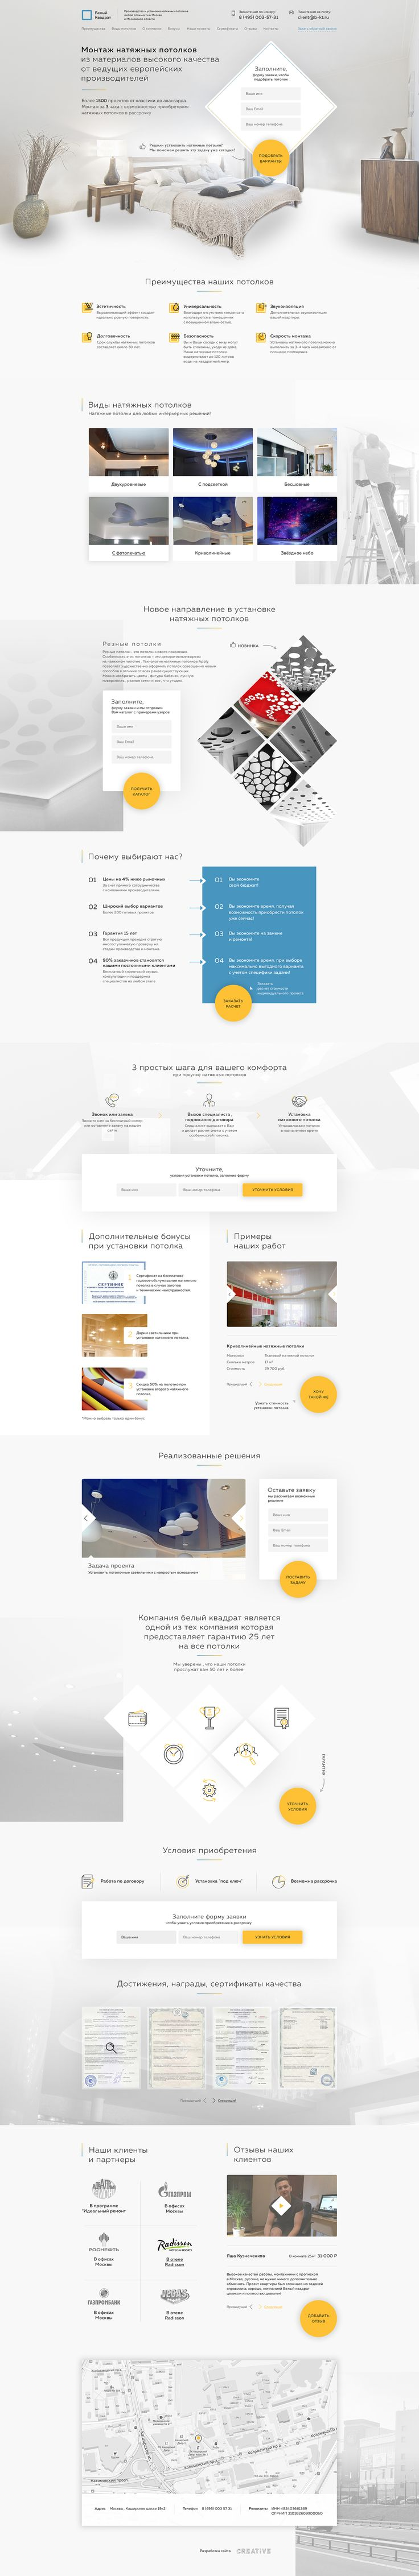 Landing Page - Stretch ceiling on Behance